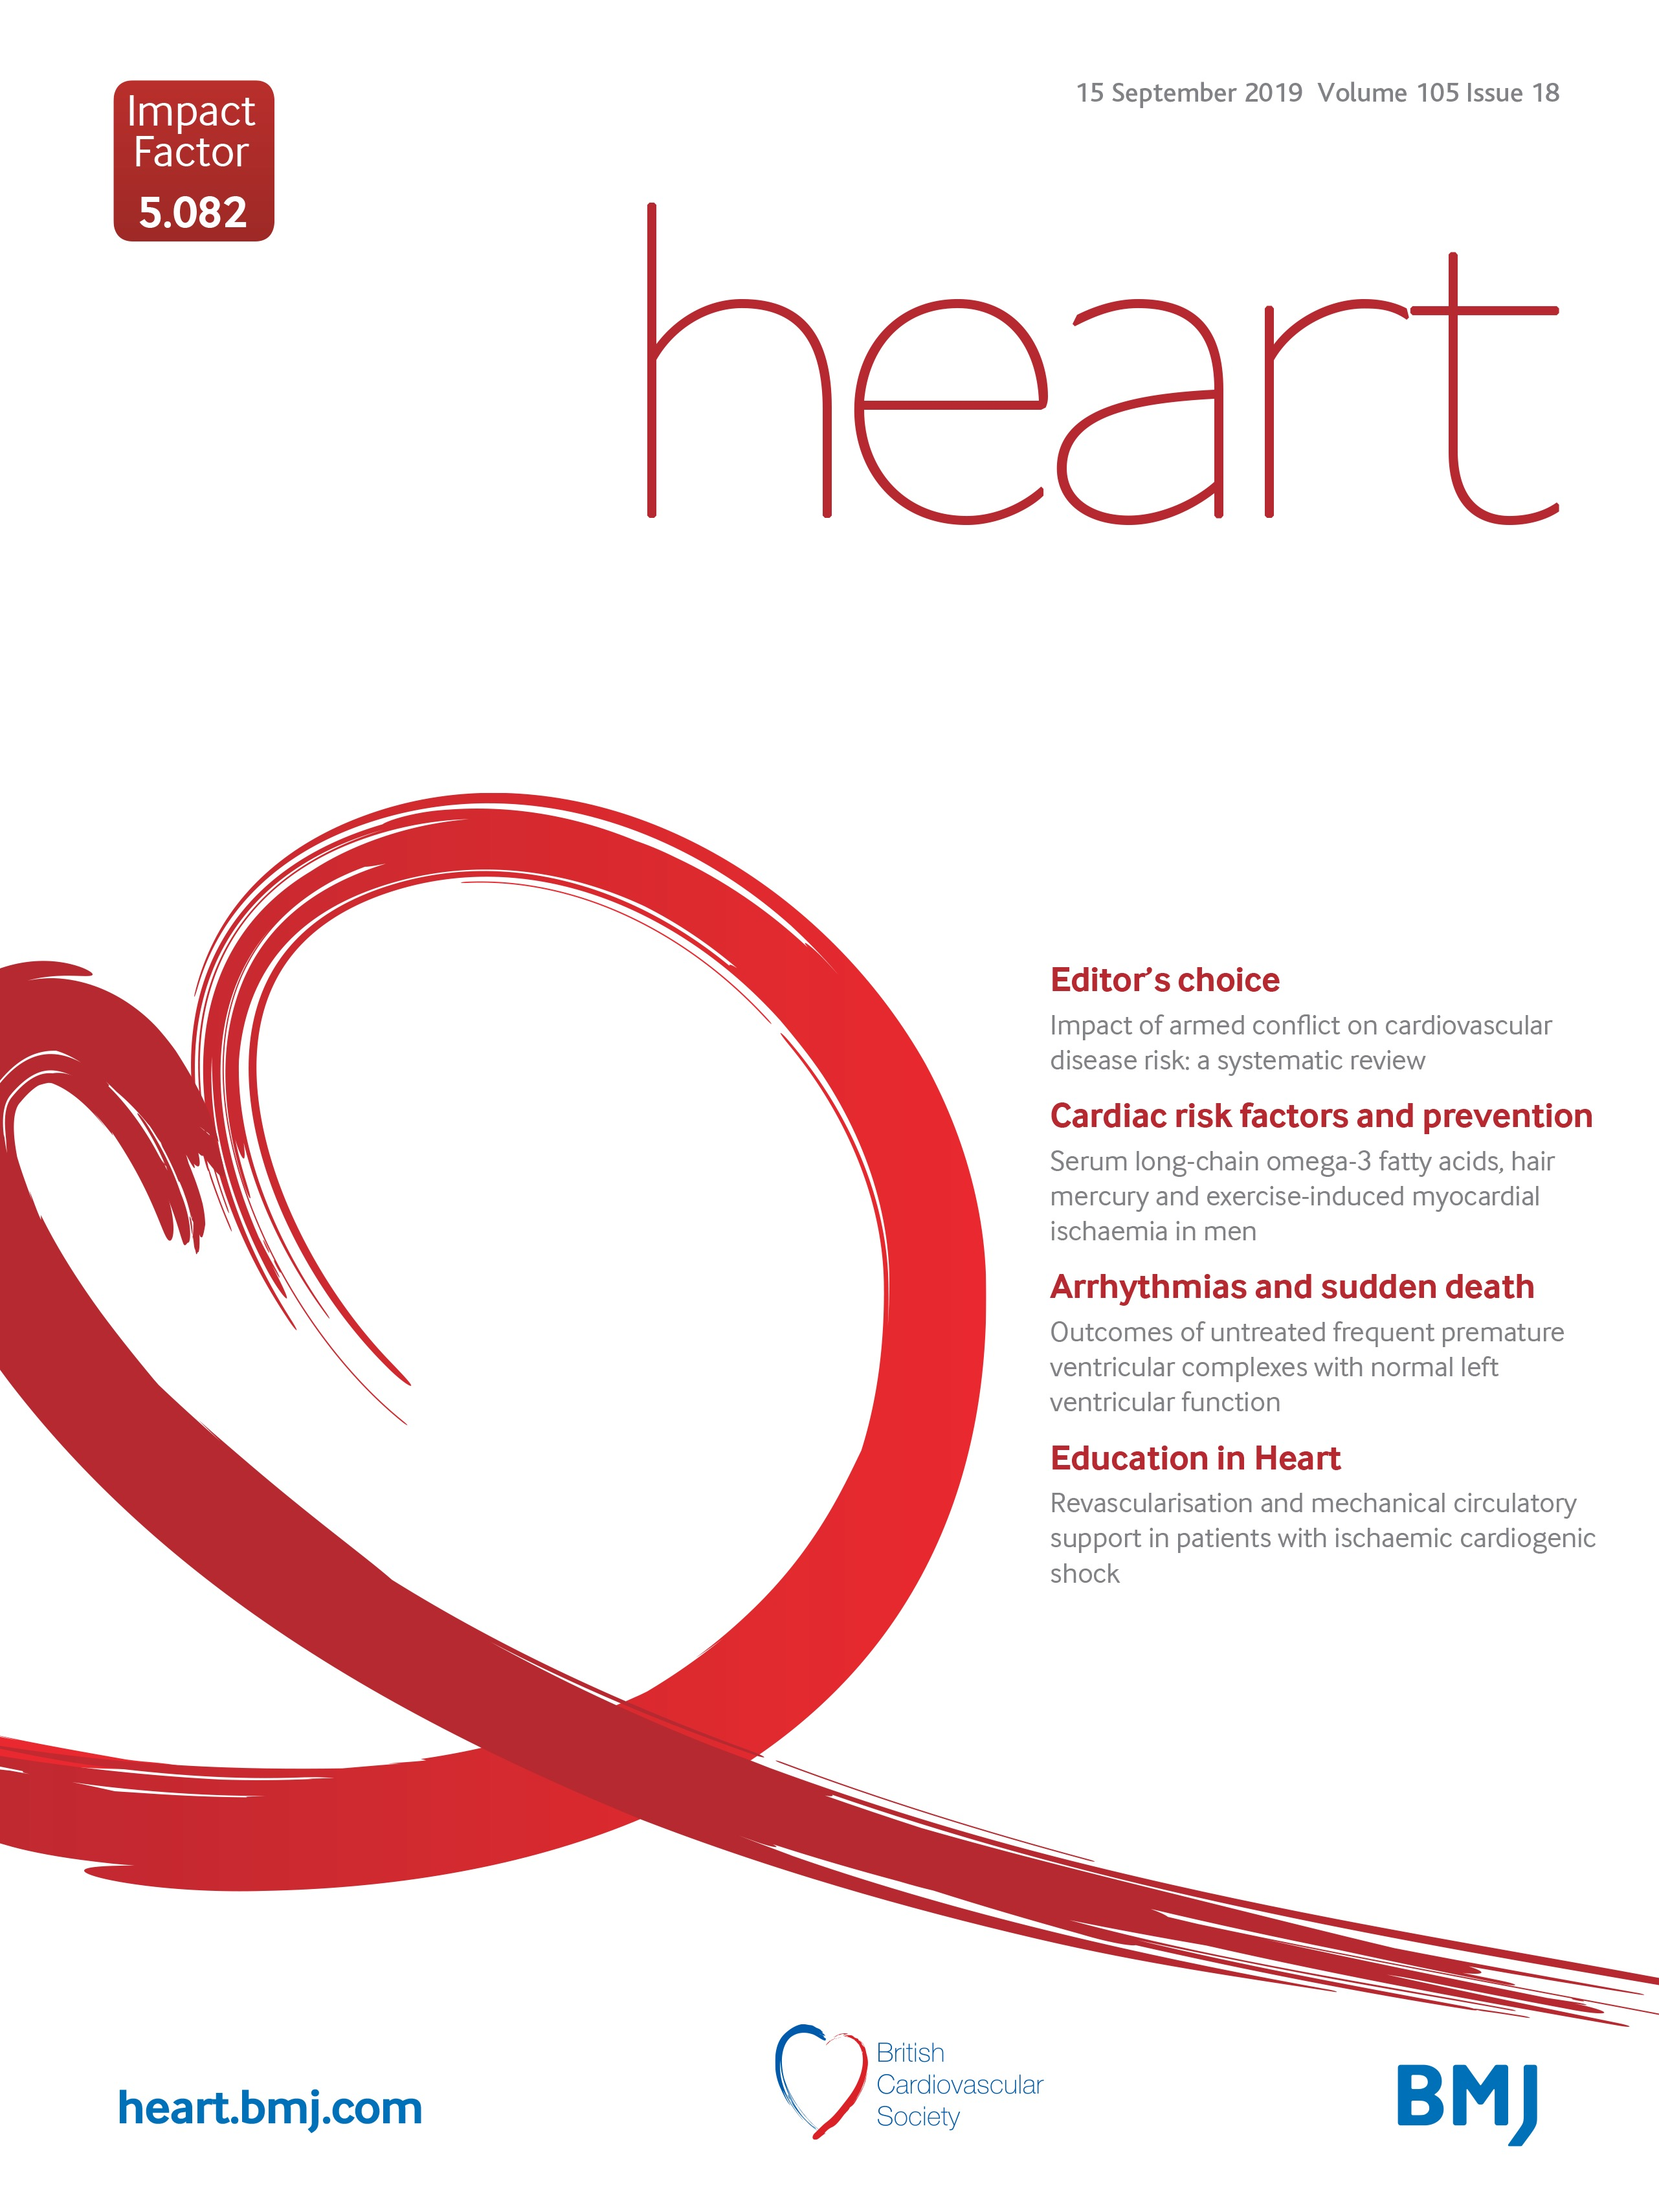 Association of napping with incident cardiovascular events